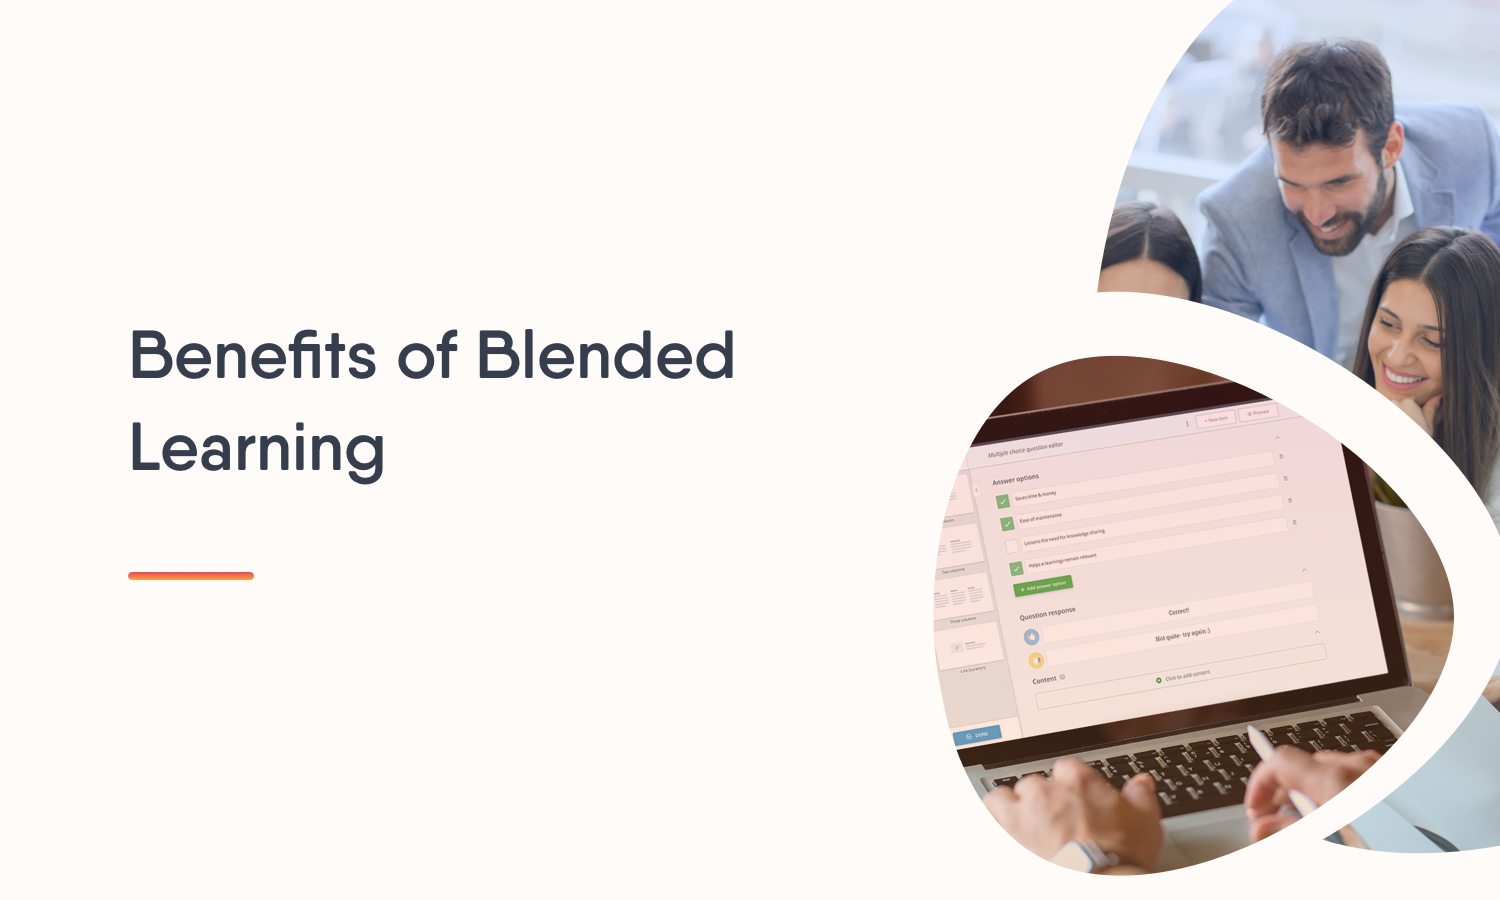 Benefits of Blended Learning@2x